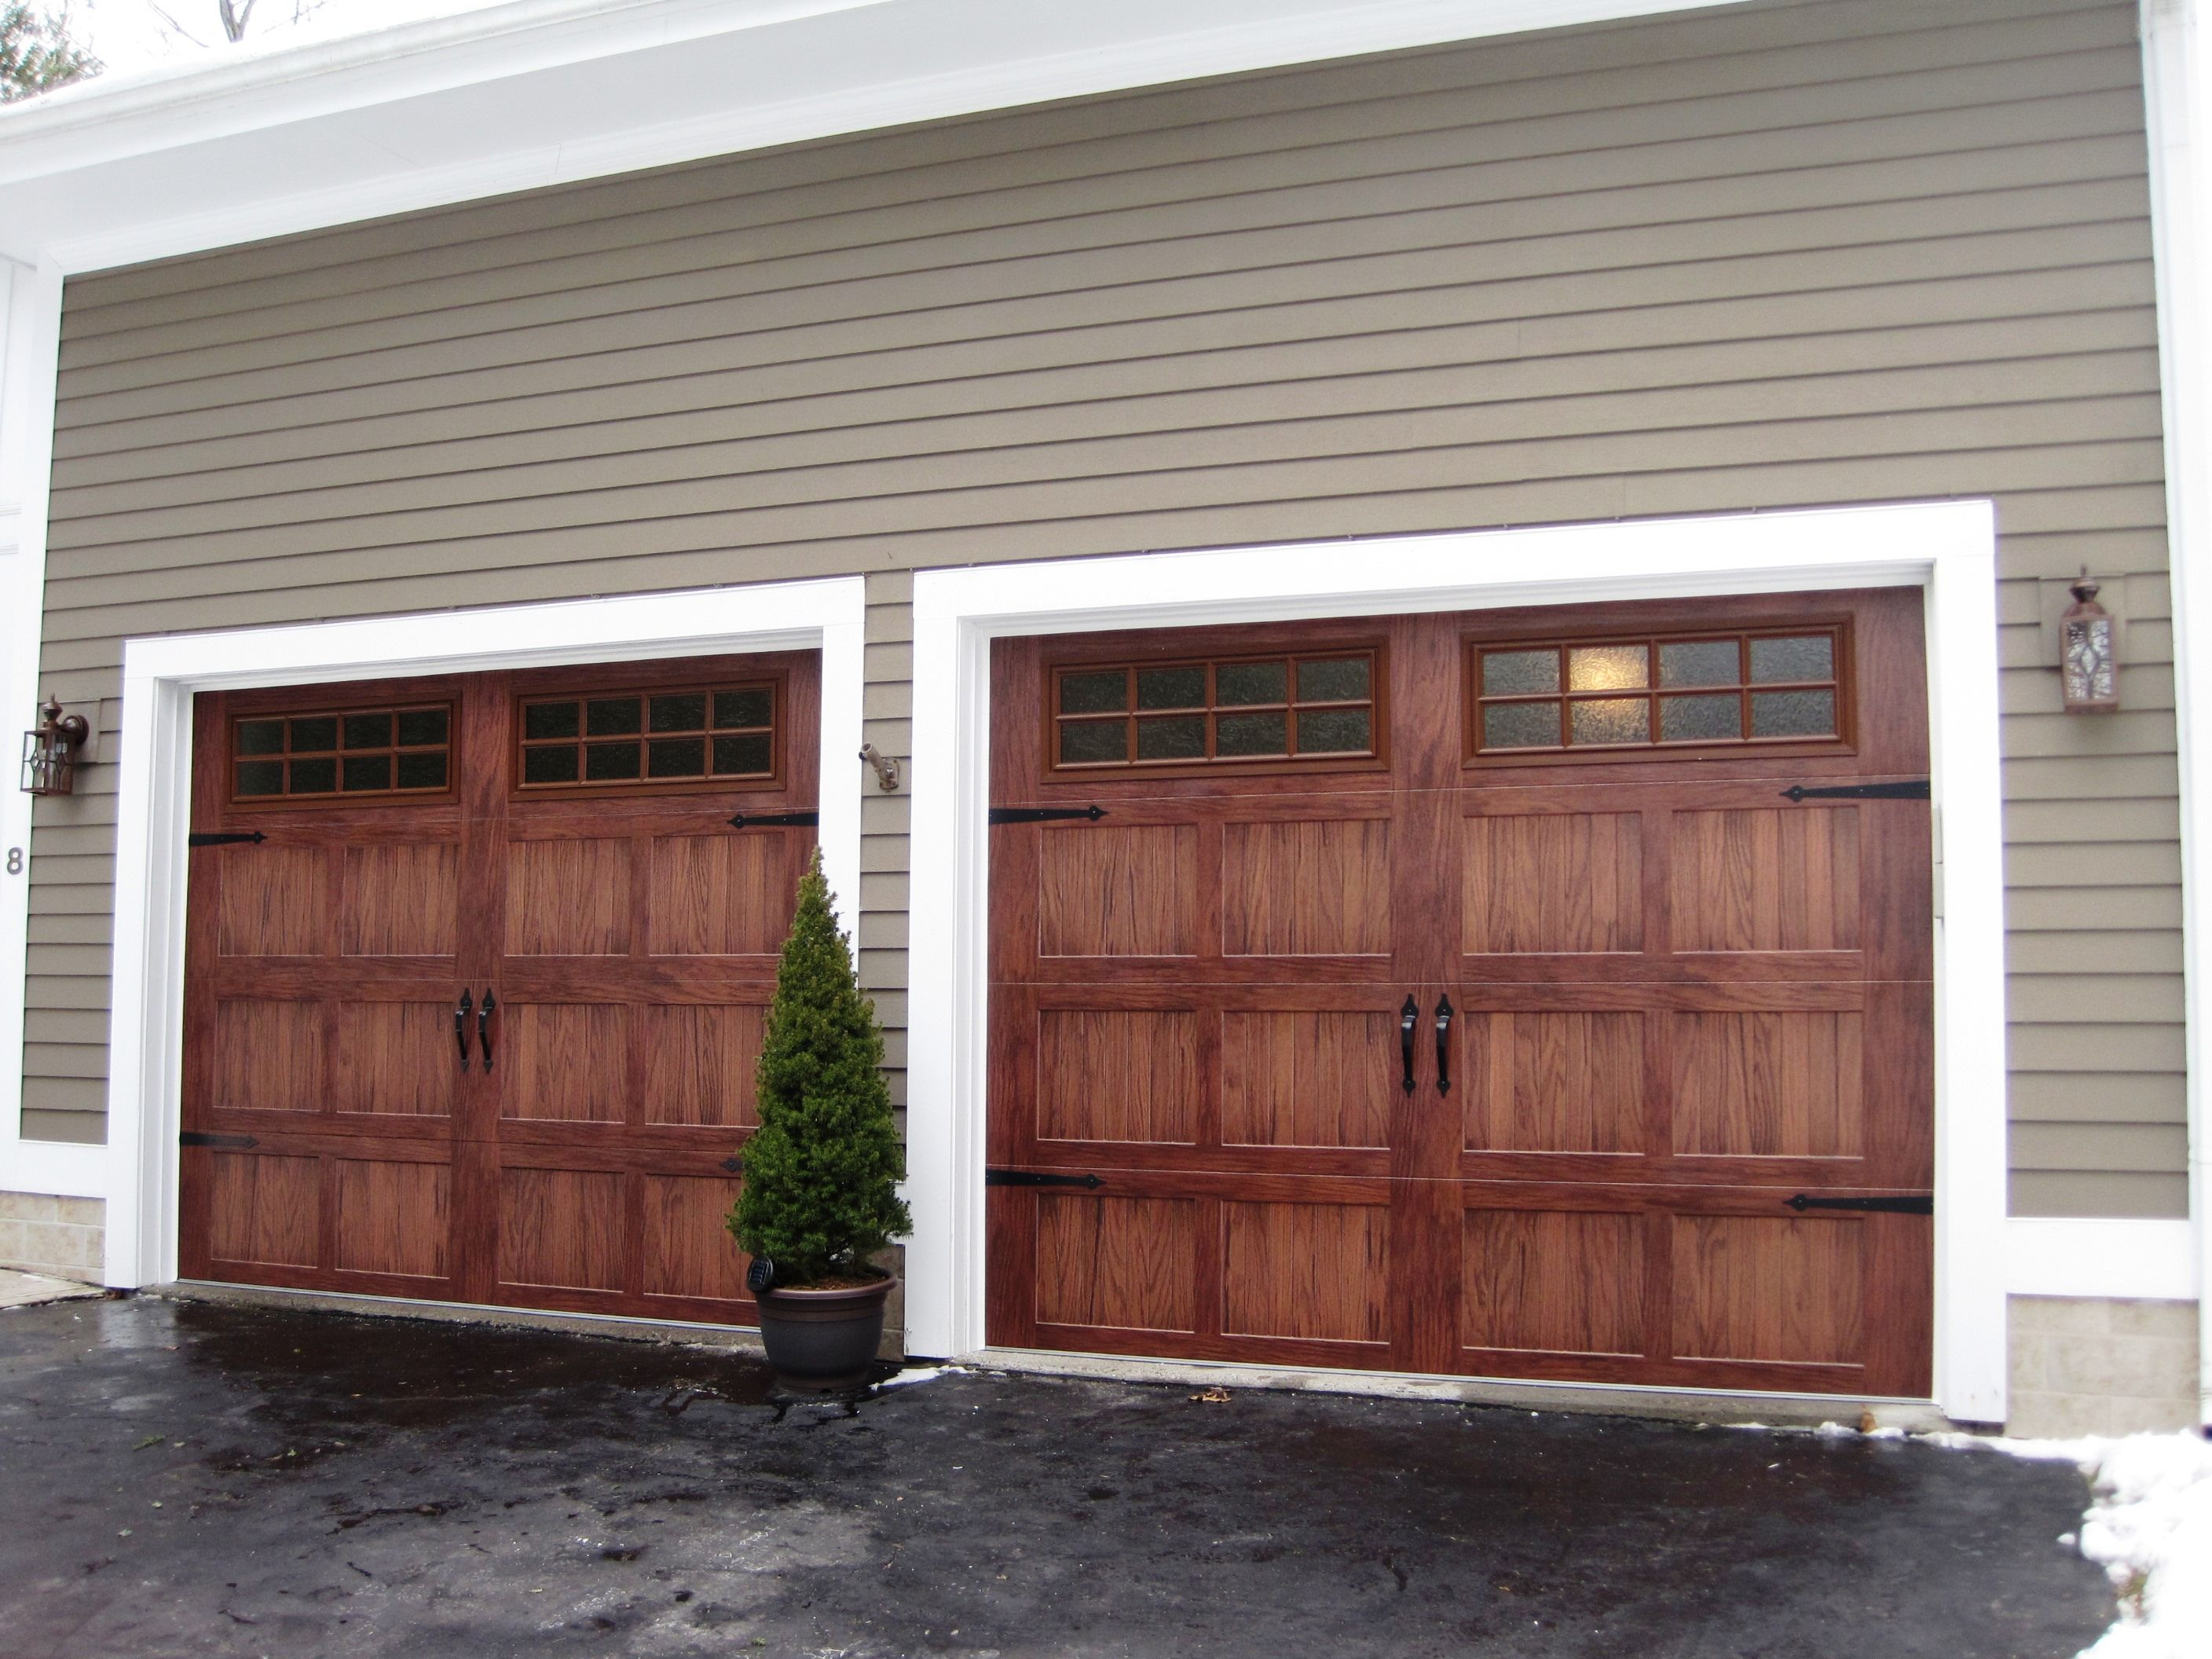 Faux Garage Door Hardware Best 25 Metal Garage Doors Ideas Only On Pinterest Outdoor Wood